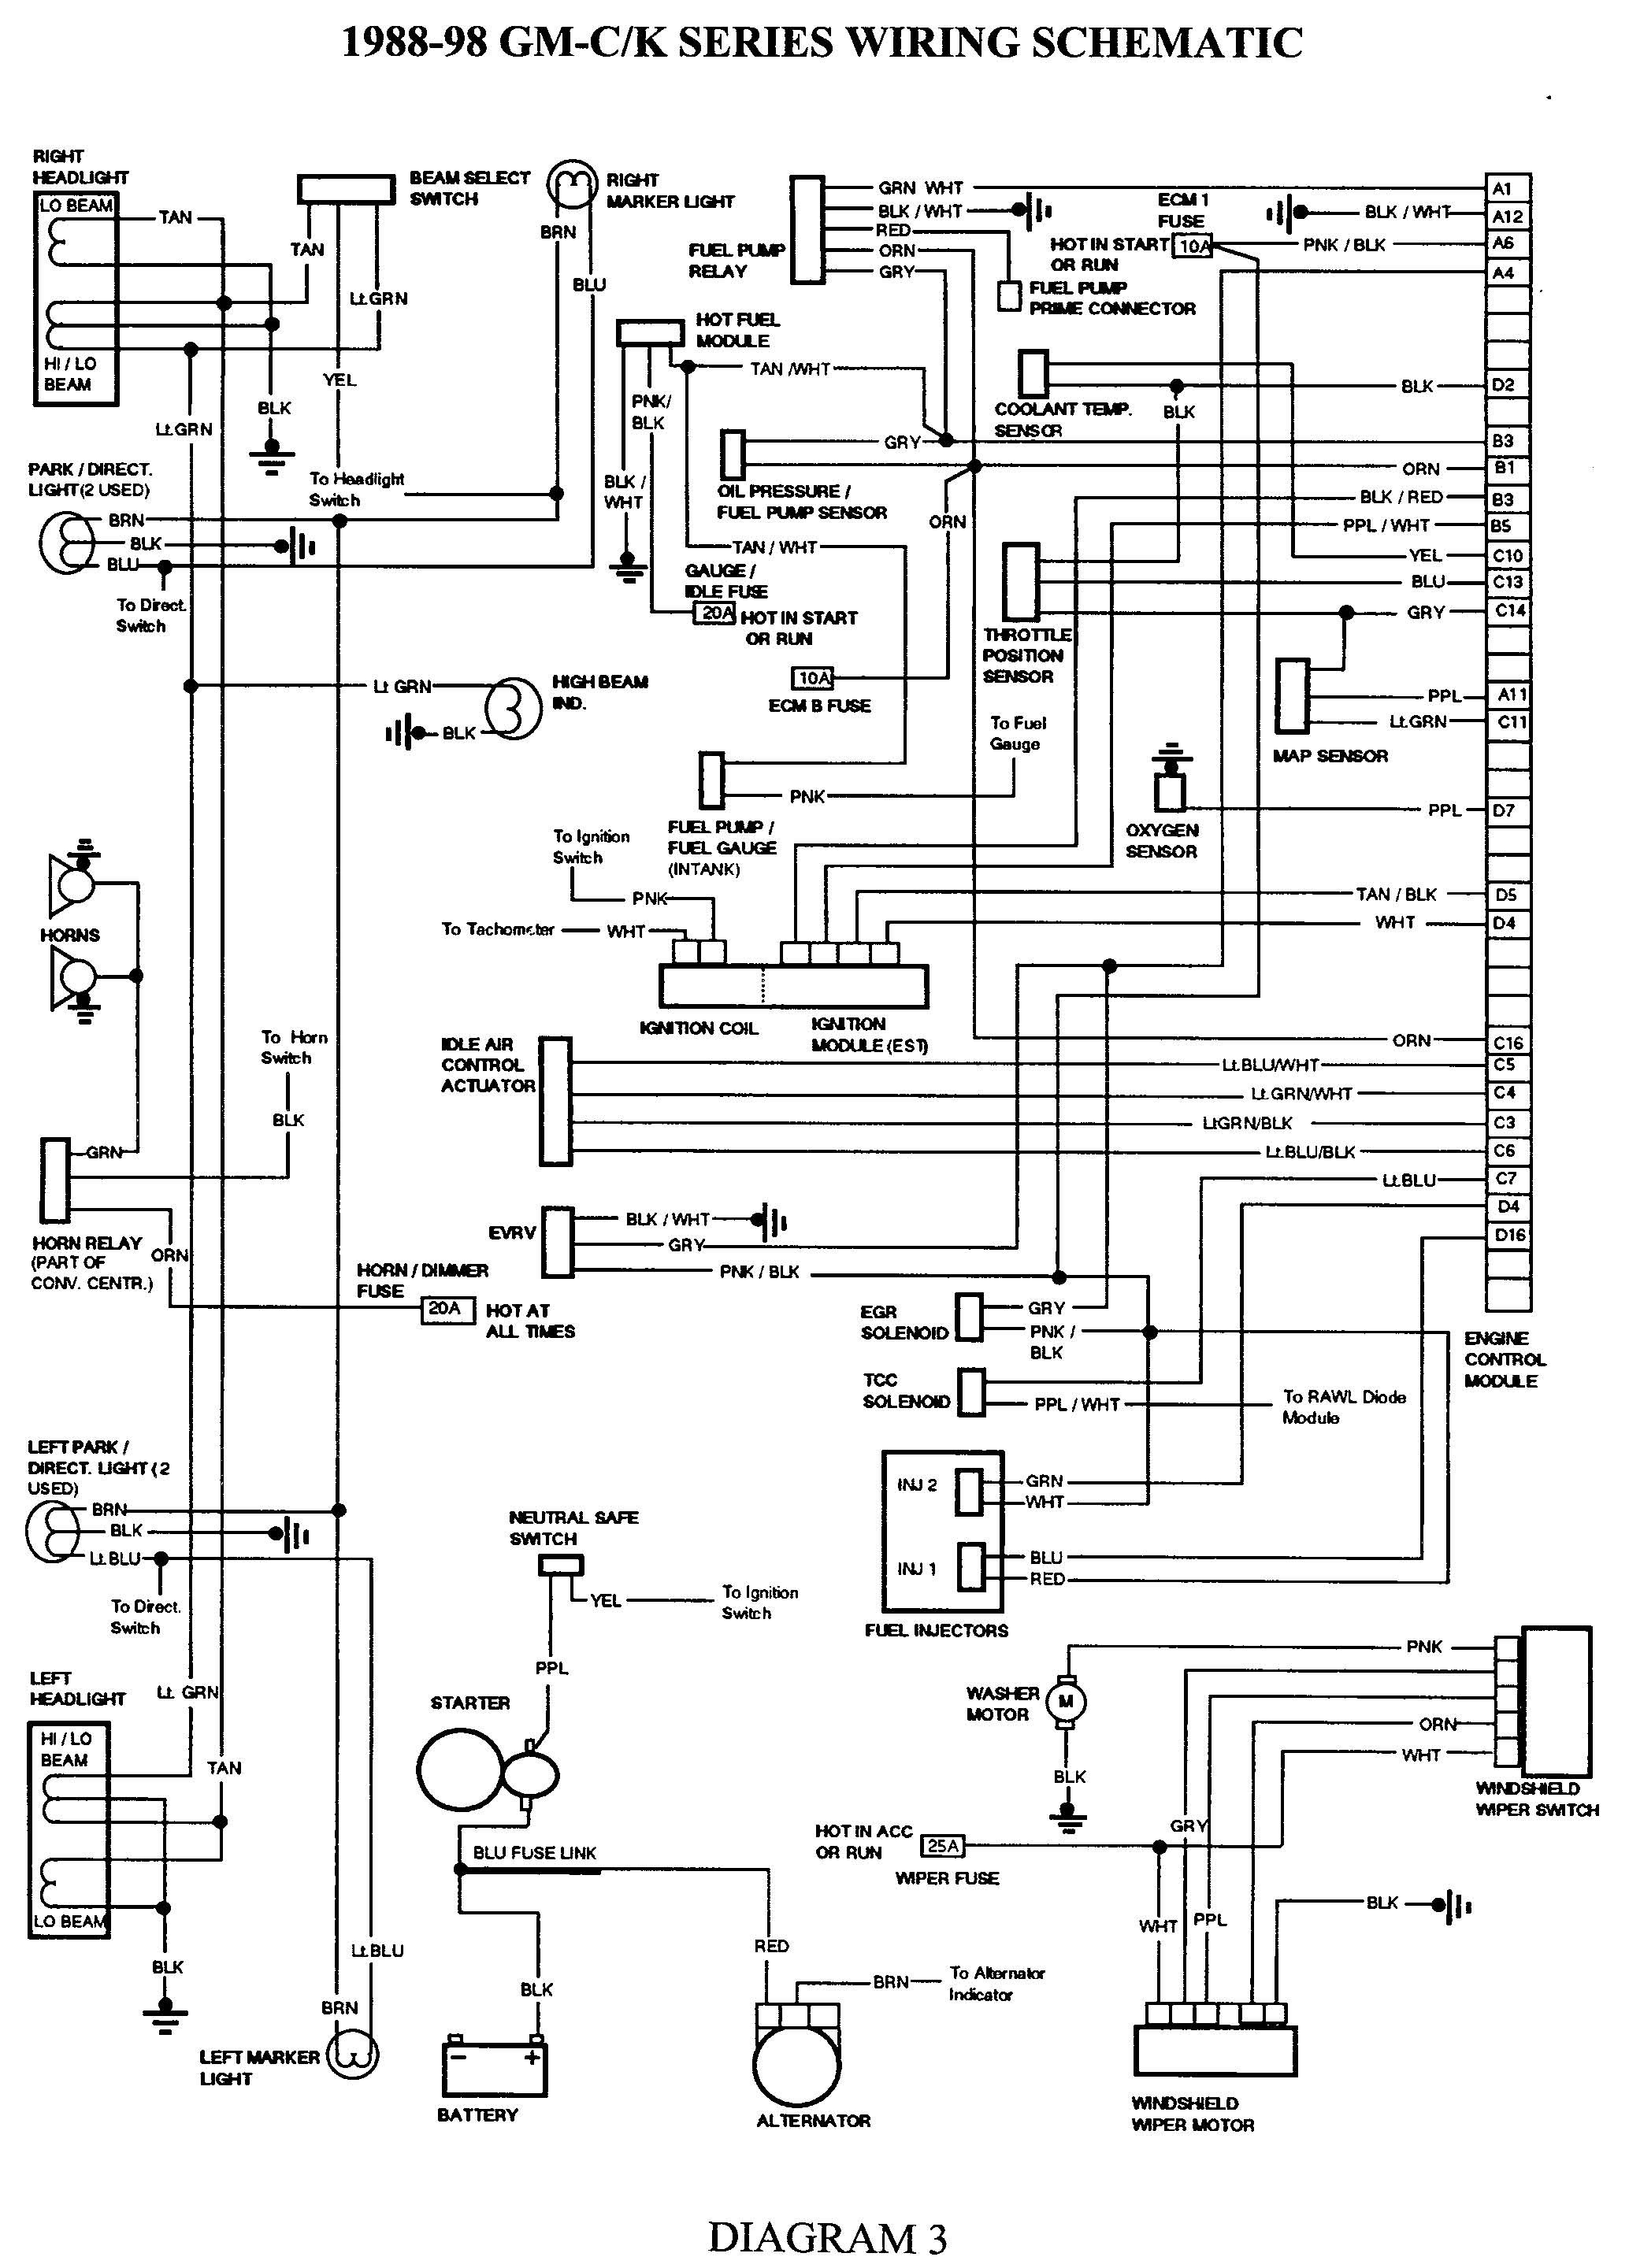 1999 Lincoln town Car Engine Diagram 98 Gmc Sierra Headlight Wiring Diagram Circuit Diagrams Image Of 1999 Lincoln town Car Engine Diagram